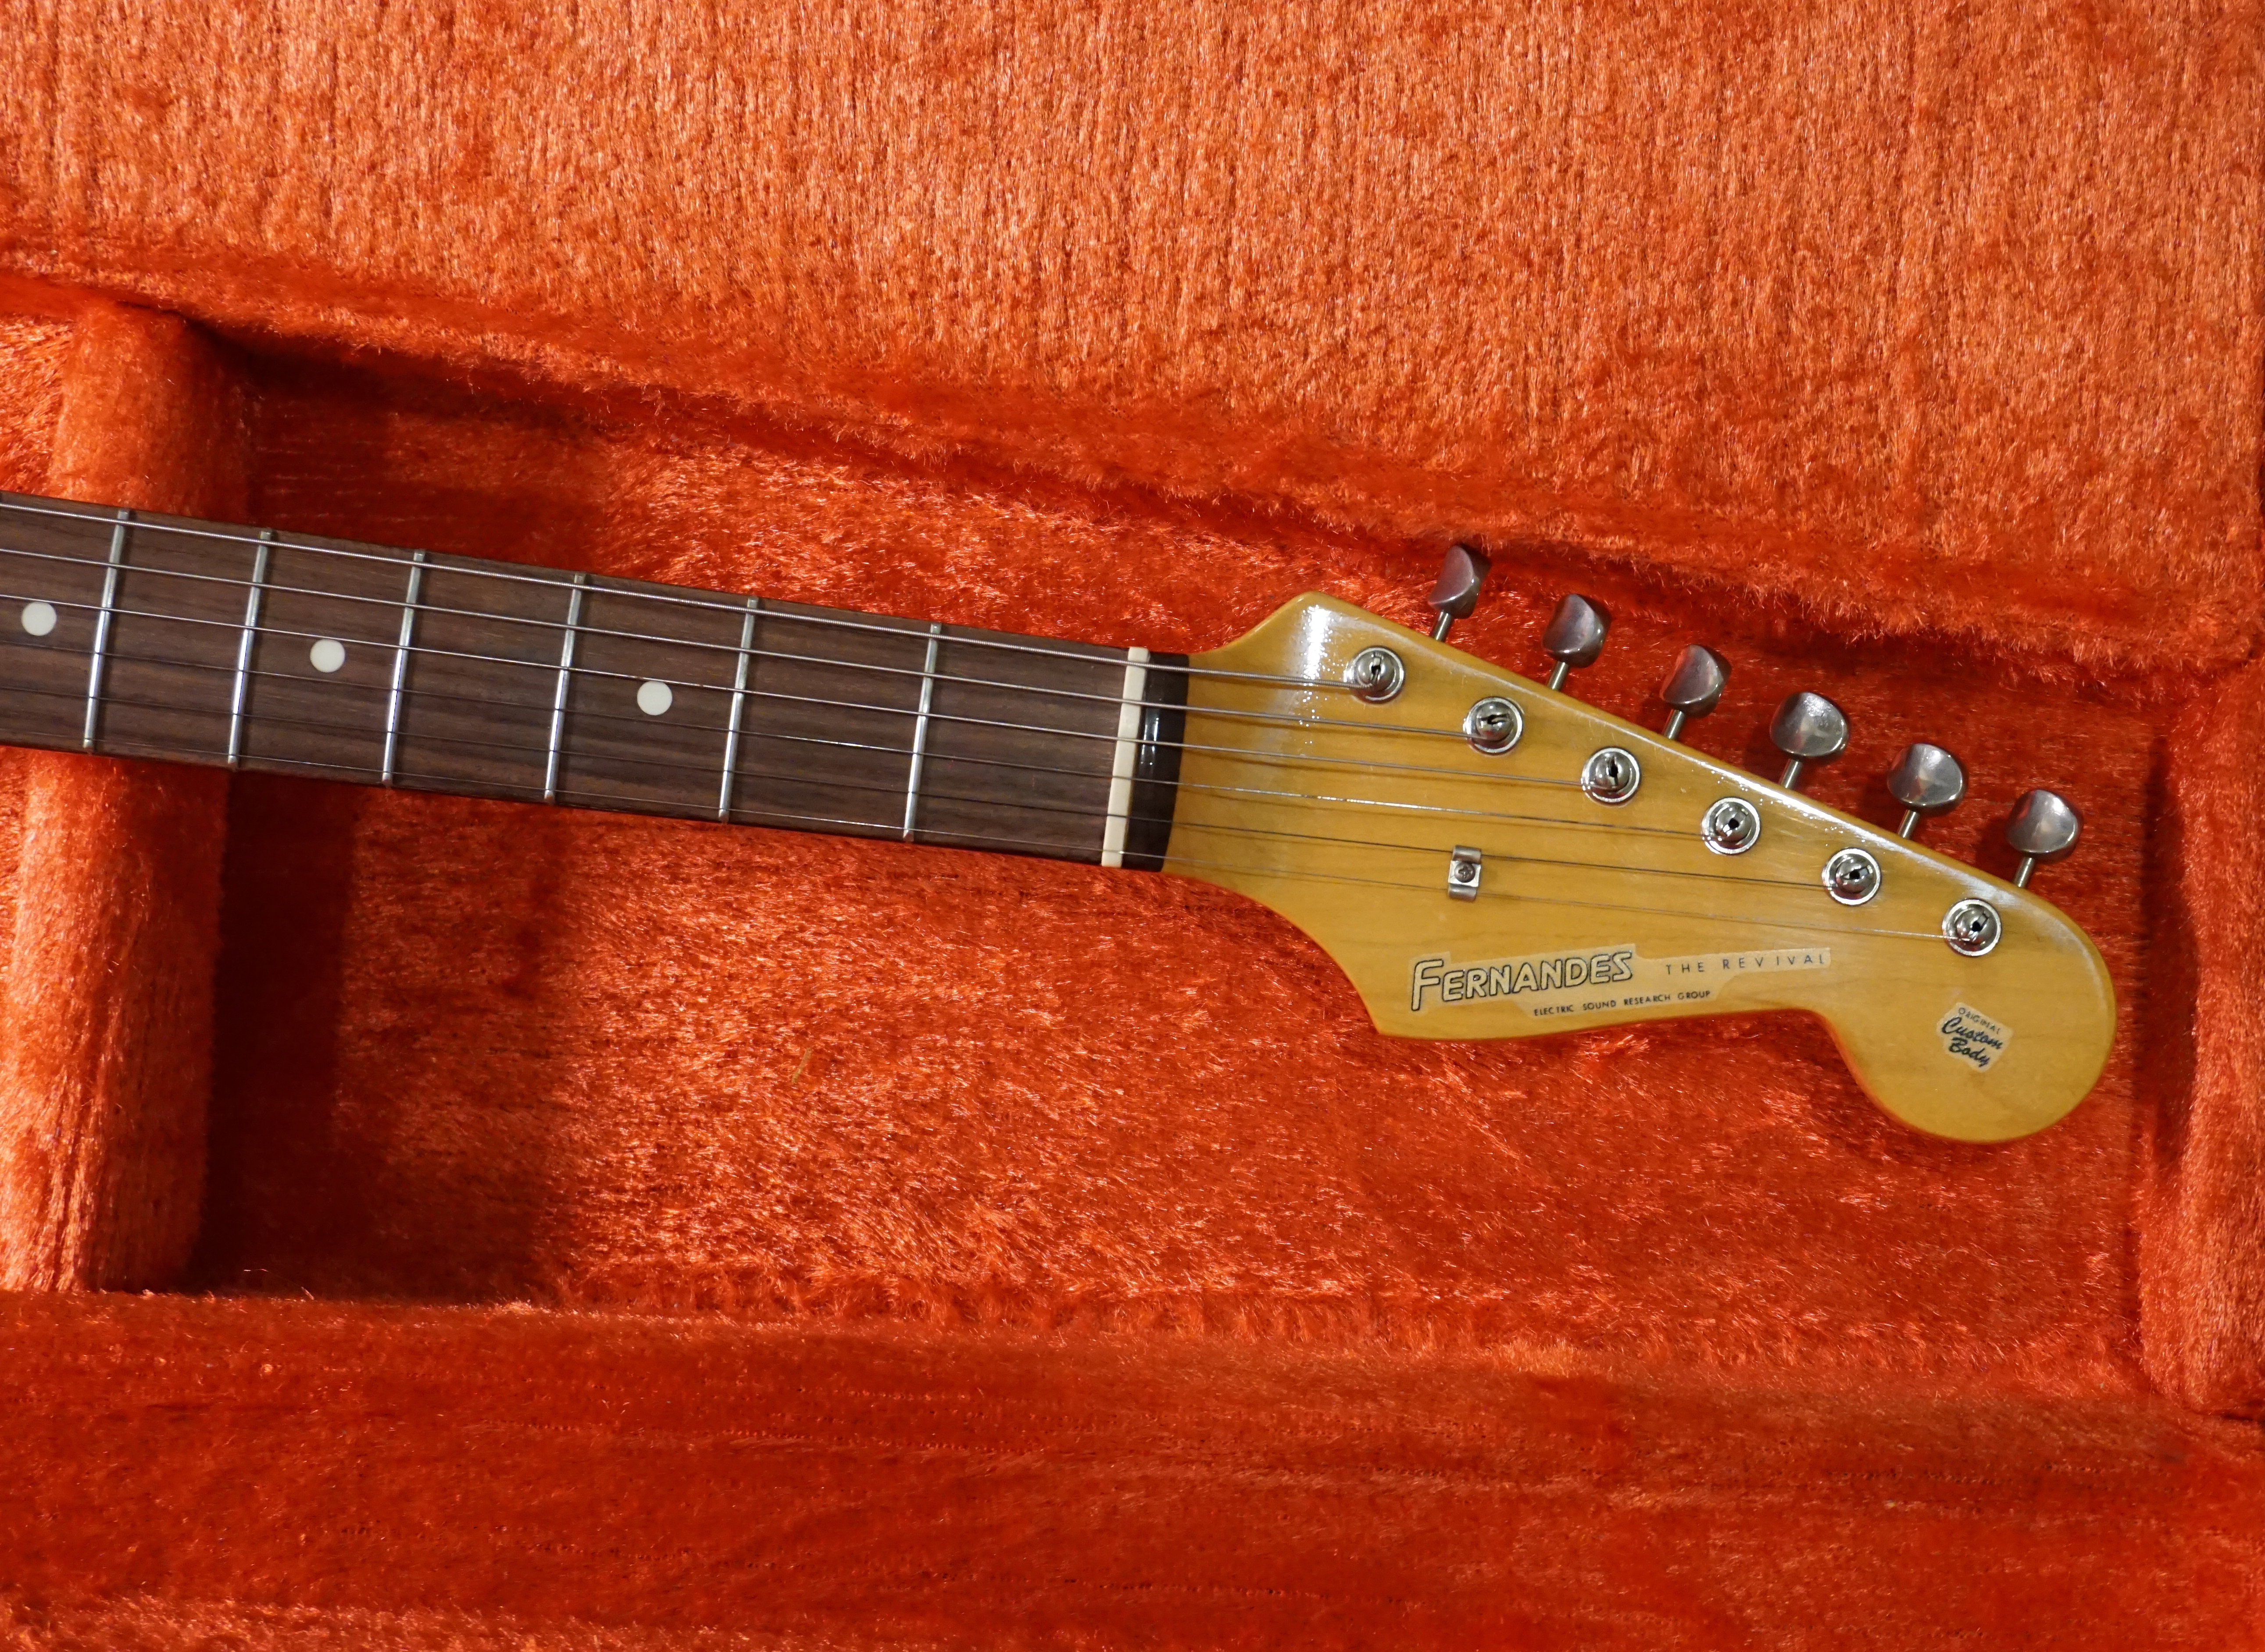 1981 Fernandes RST-80 59 YSO